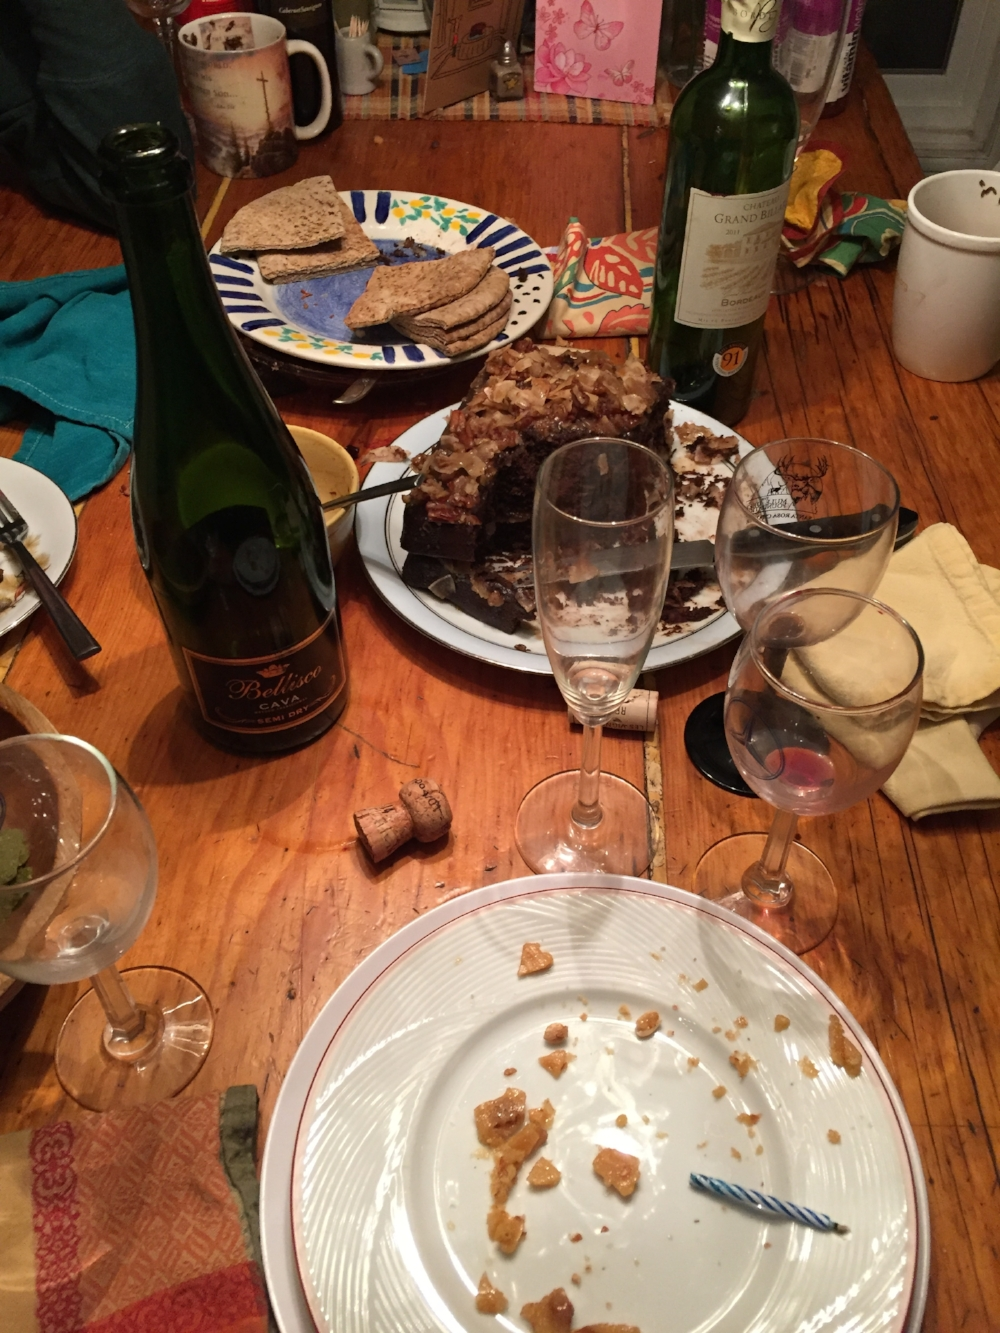 The table after a pot luck birthday party.